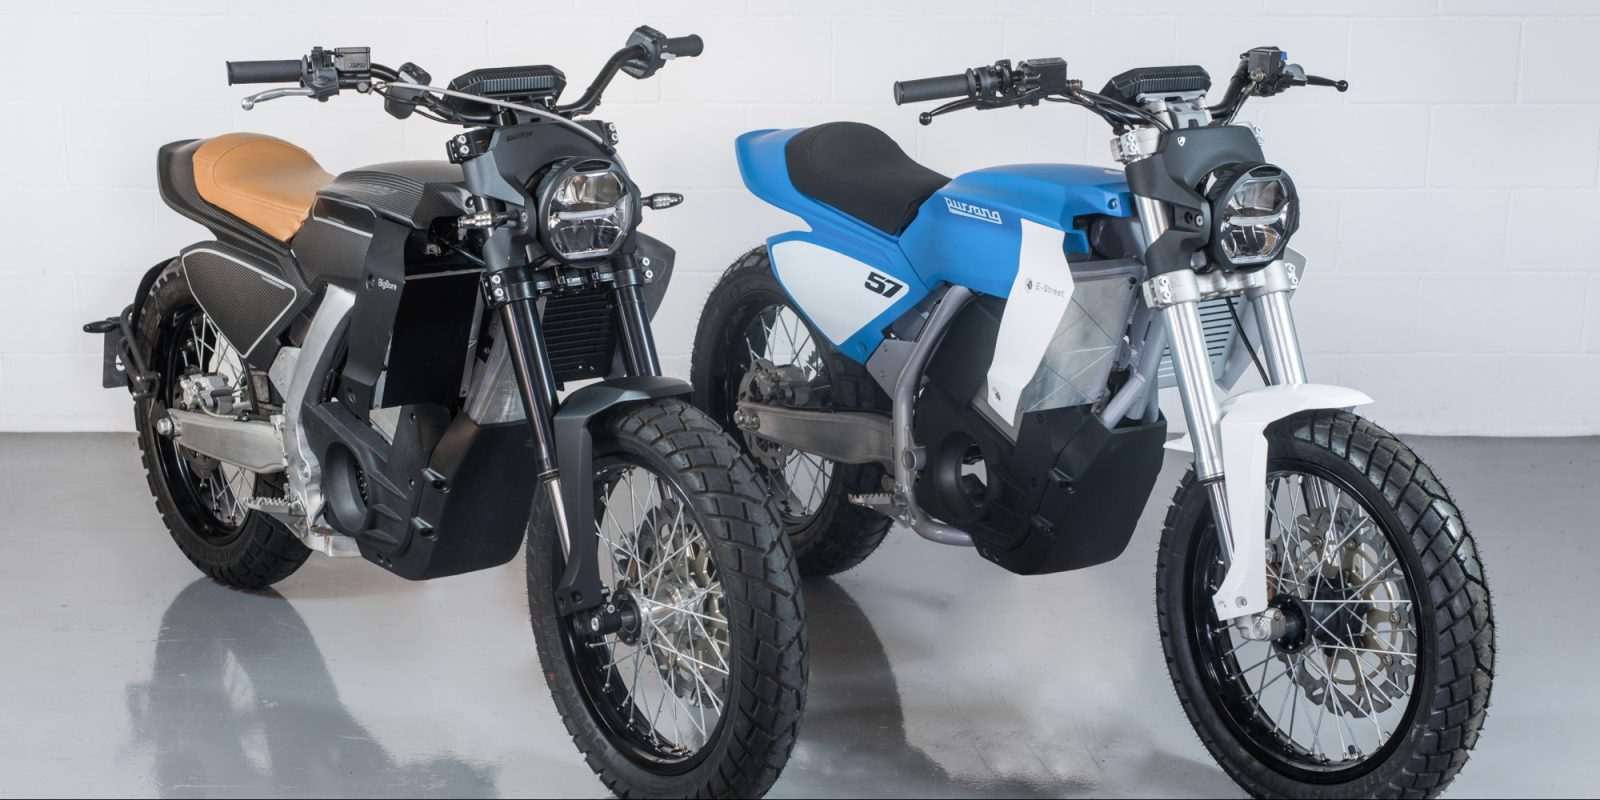 Spanish Electric Motorcycle Maker Pursang Is Actually Beginning Production Electrek